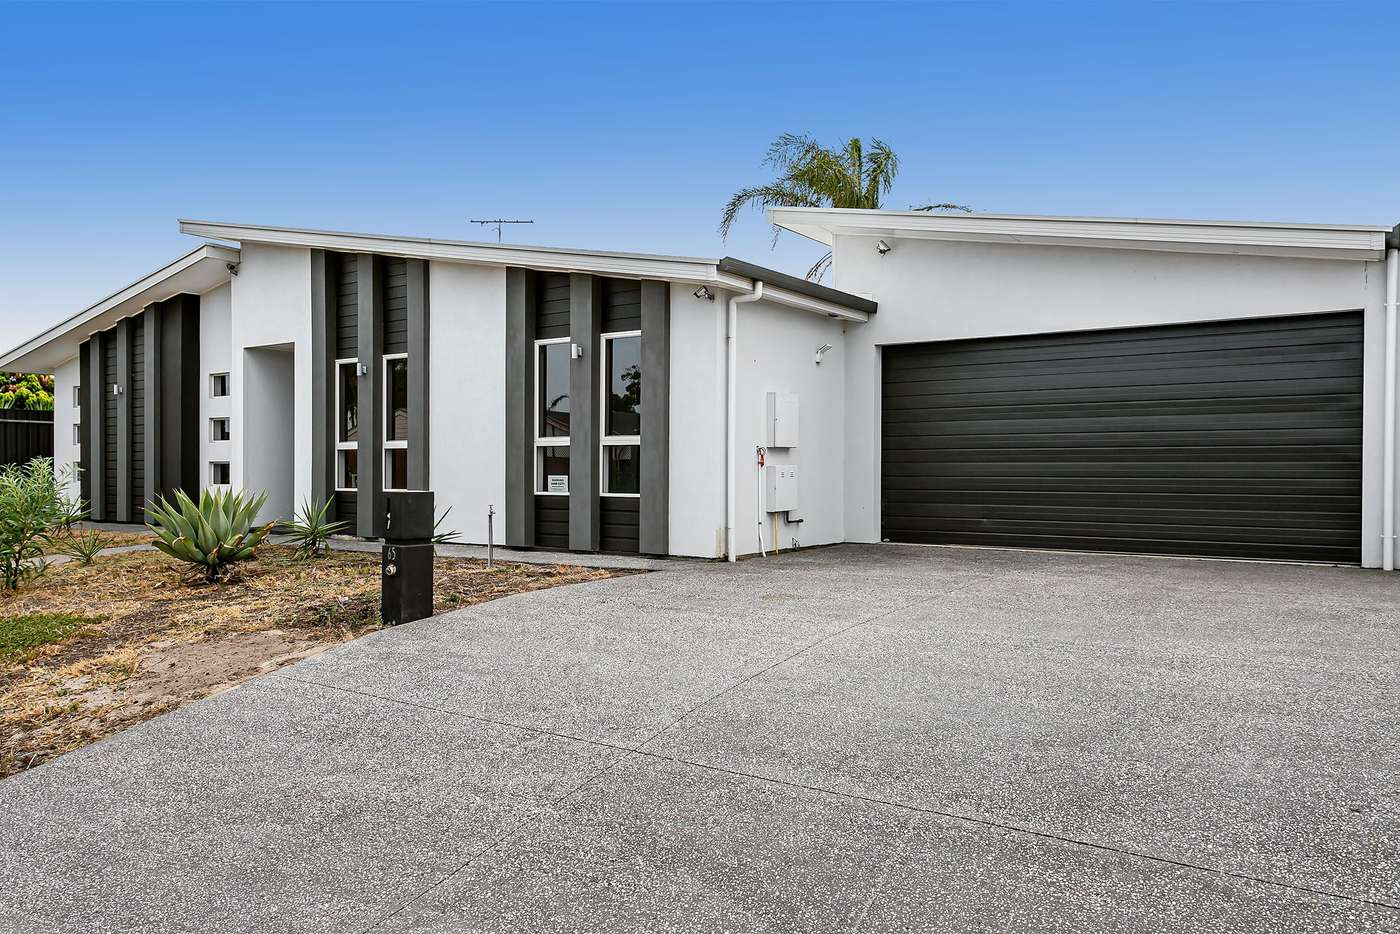 Main view of Homely house listing, 65 Sir Ross Smith Avenue, North Haven SA 5018